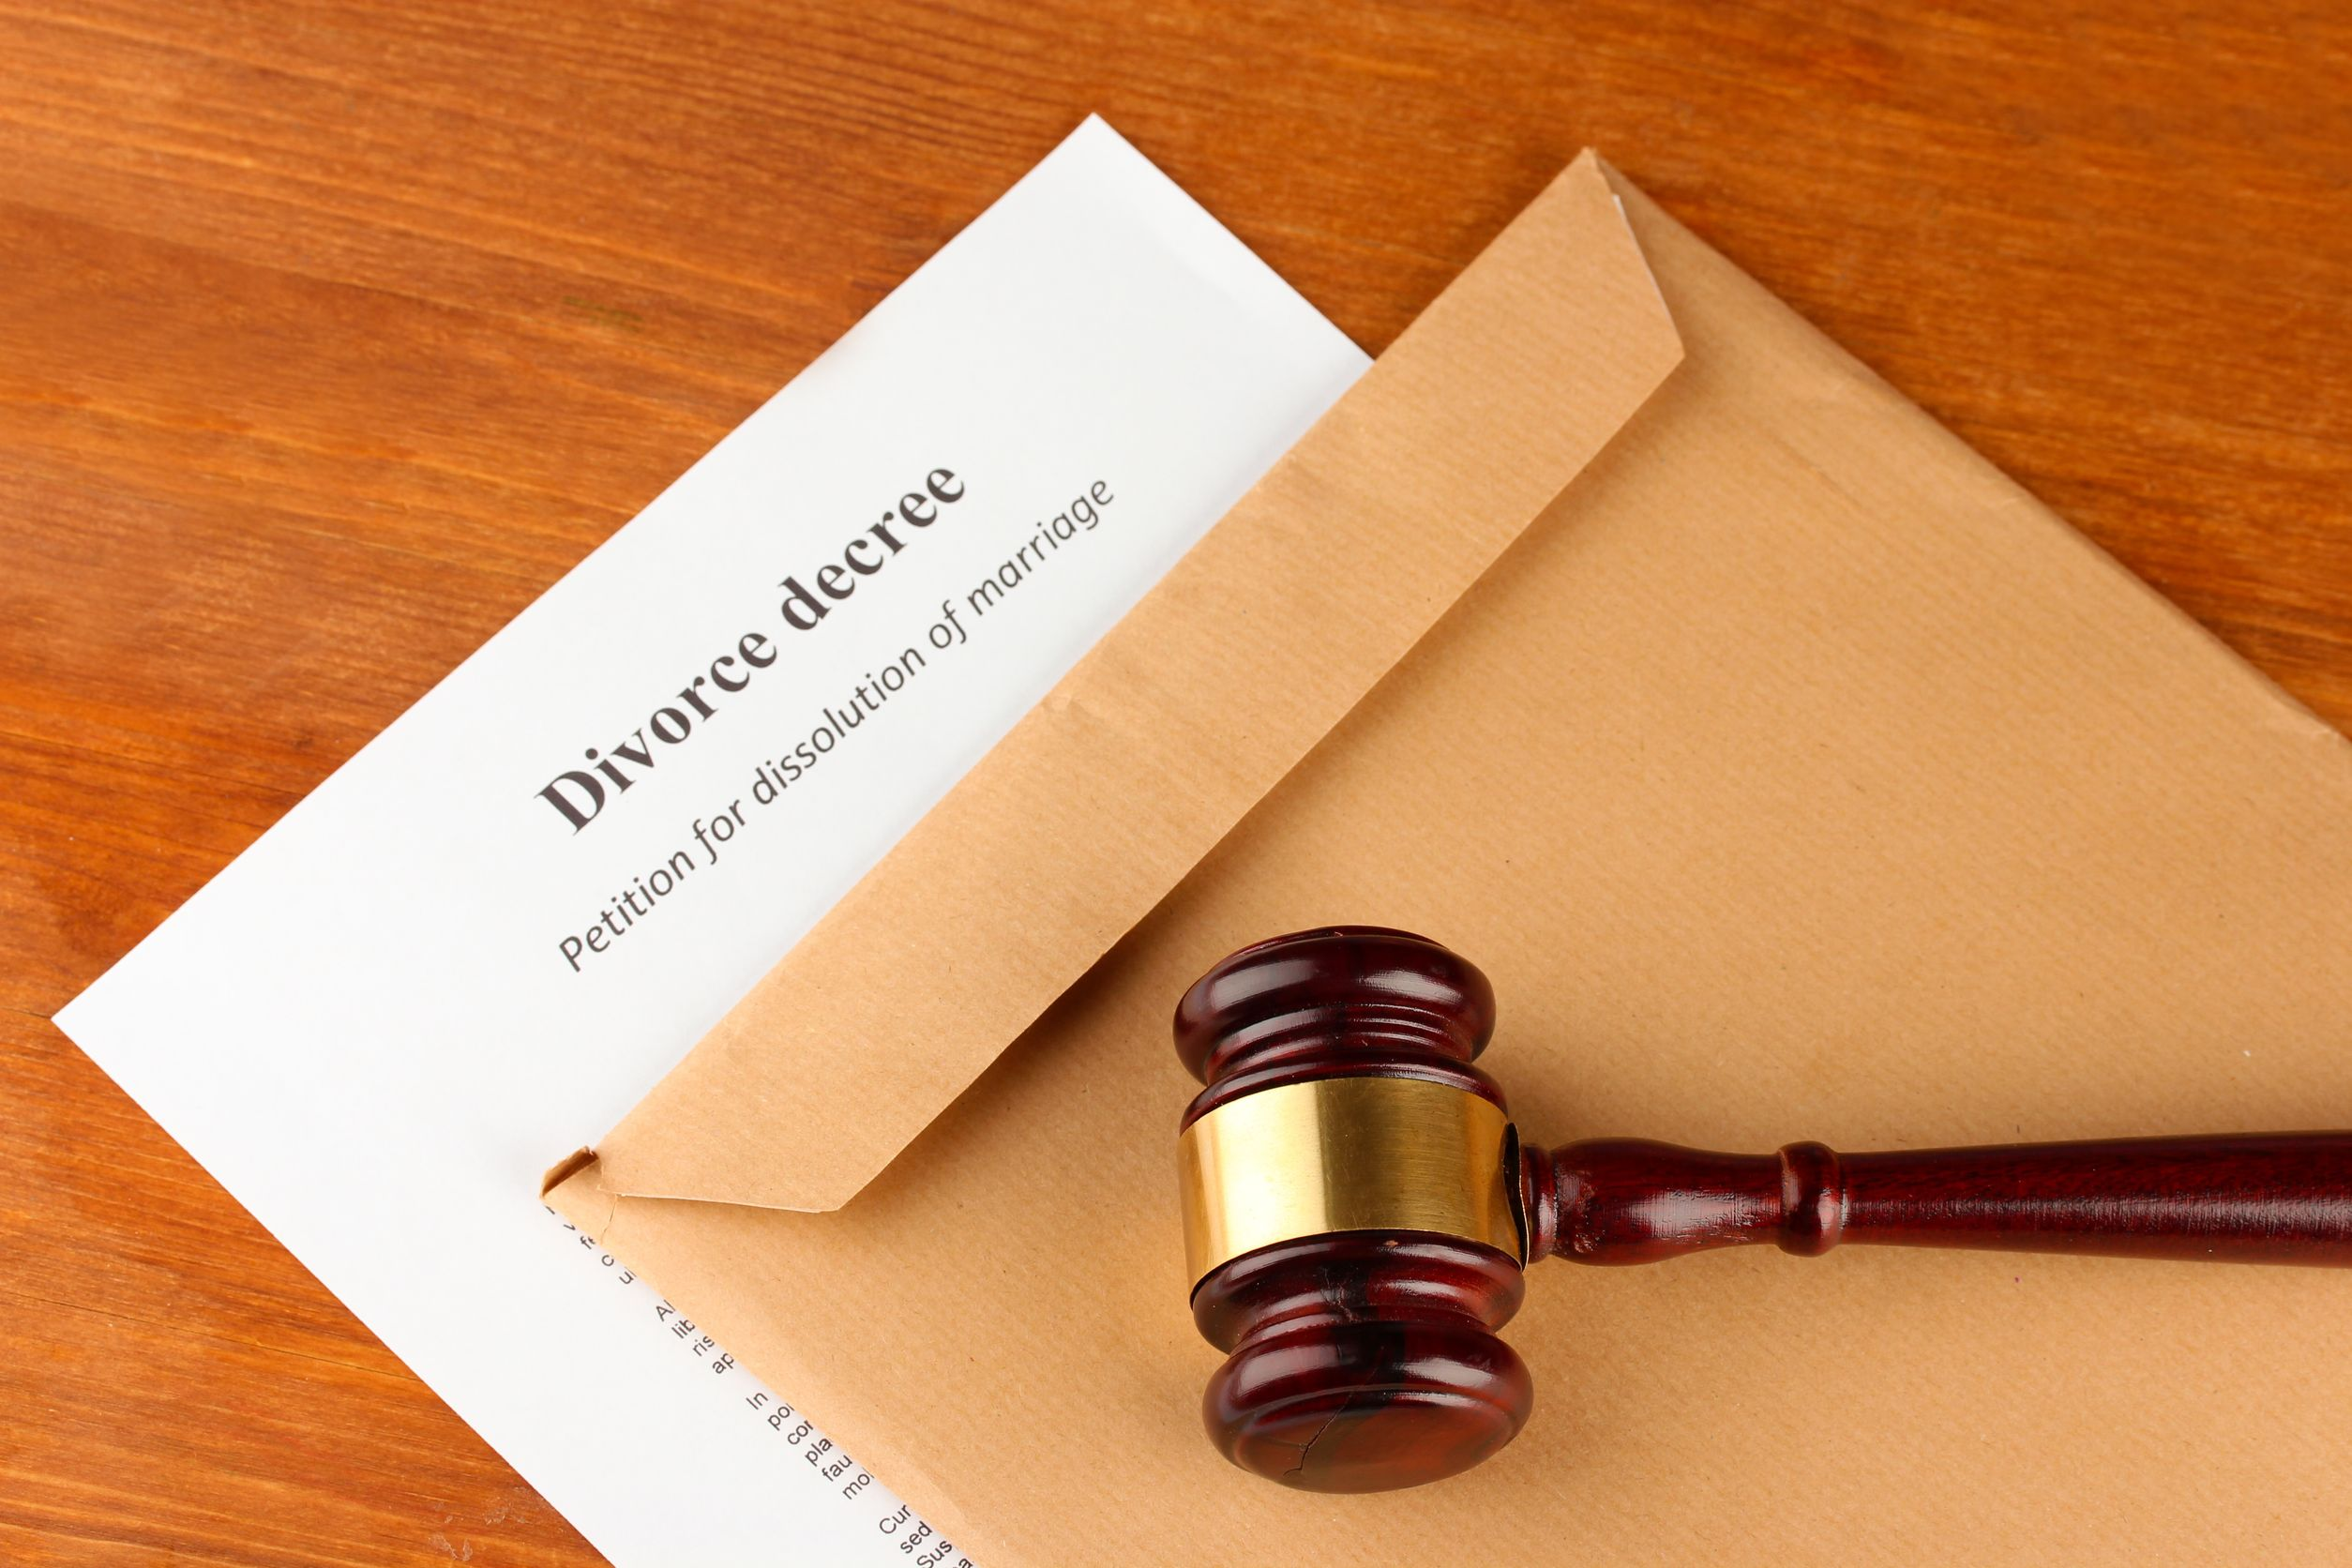 Those getting divorced usually want the process to be completed swiftly with the assistance of a family law attorney in Lee's Summit, MO so they can stop having to think…